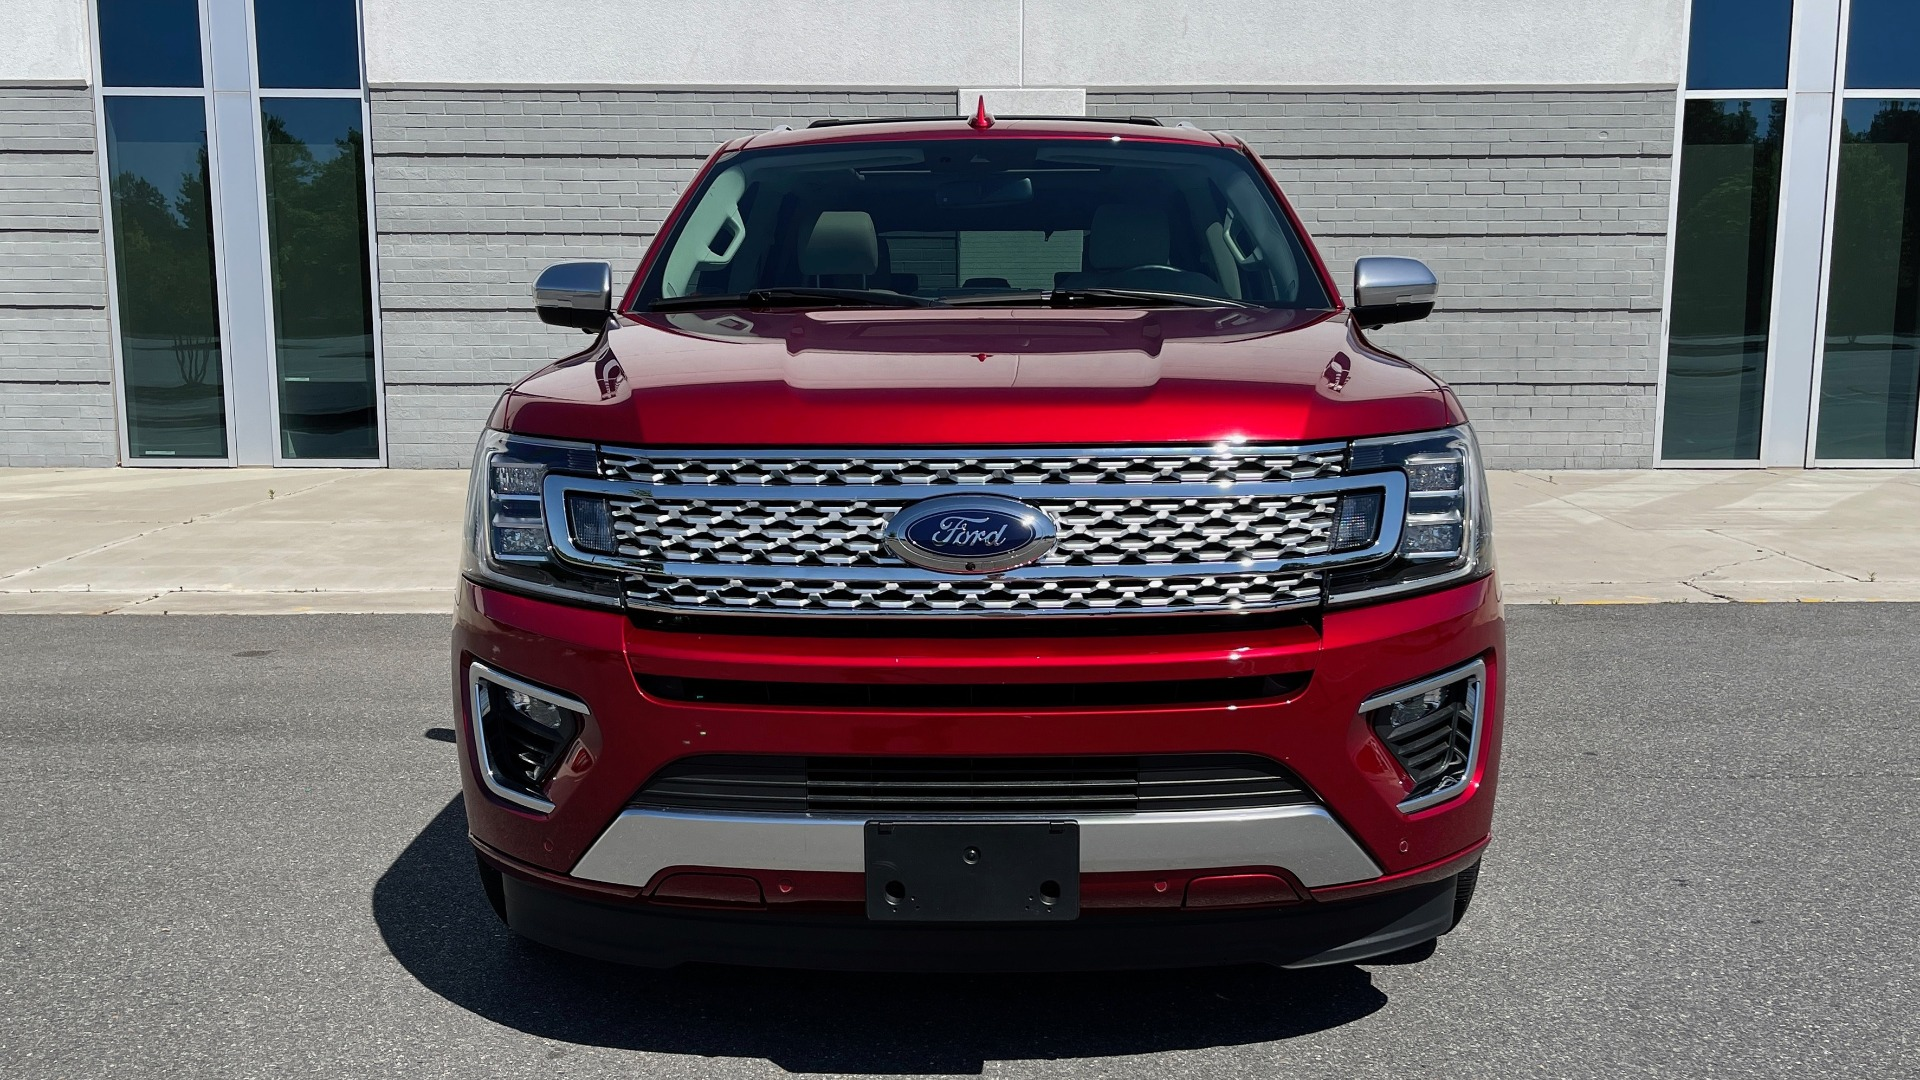 Used 2019 Ford EXPEDITION PLATINUM / 3.5L ECOBOOST / NAV / WIFI / SUNROOF / 3-ROW / REARVIEW for sale Sold at Formula Imports in Charlotte NC 28227 6